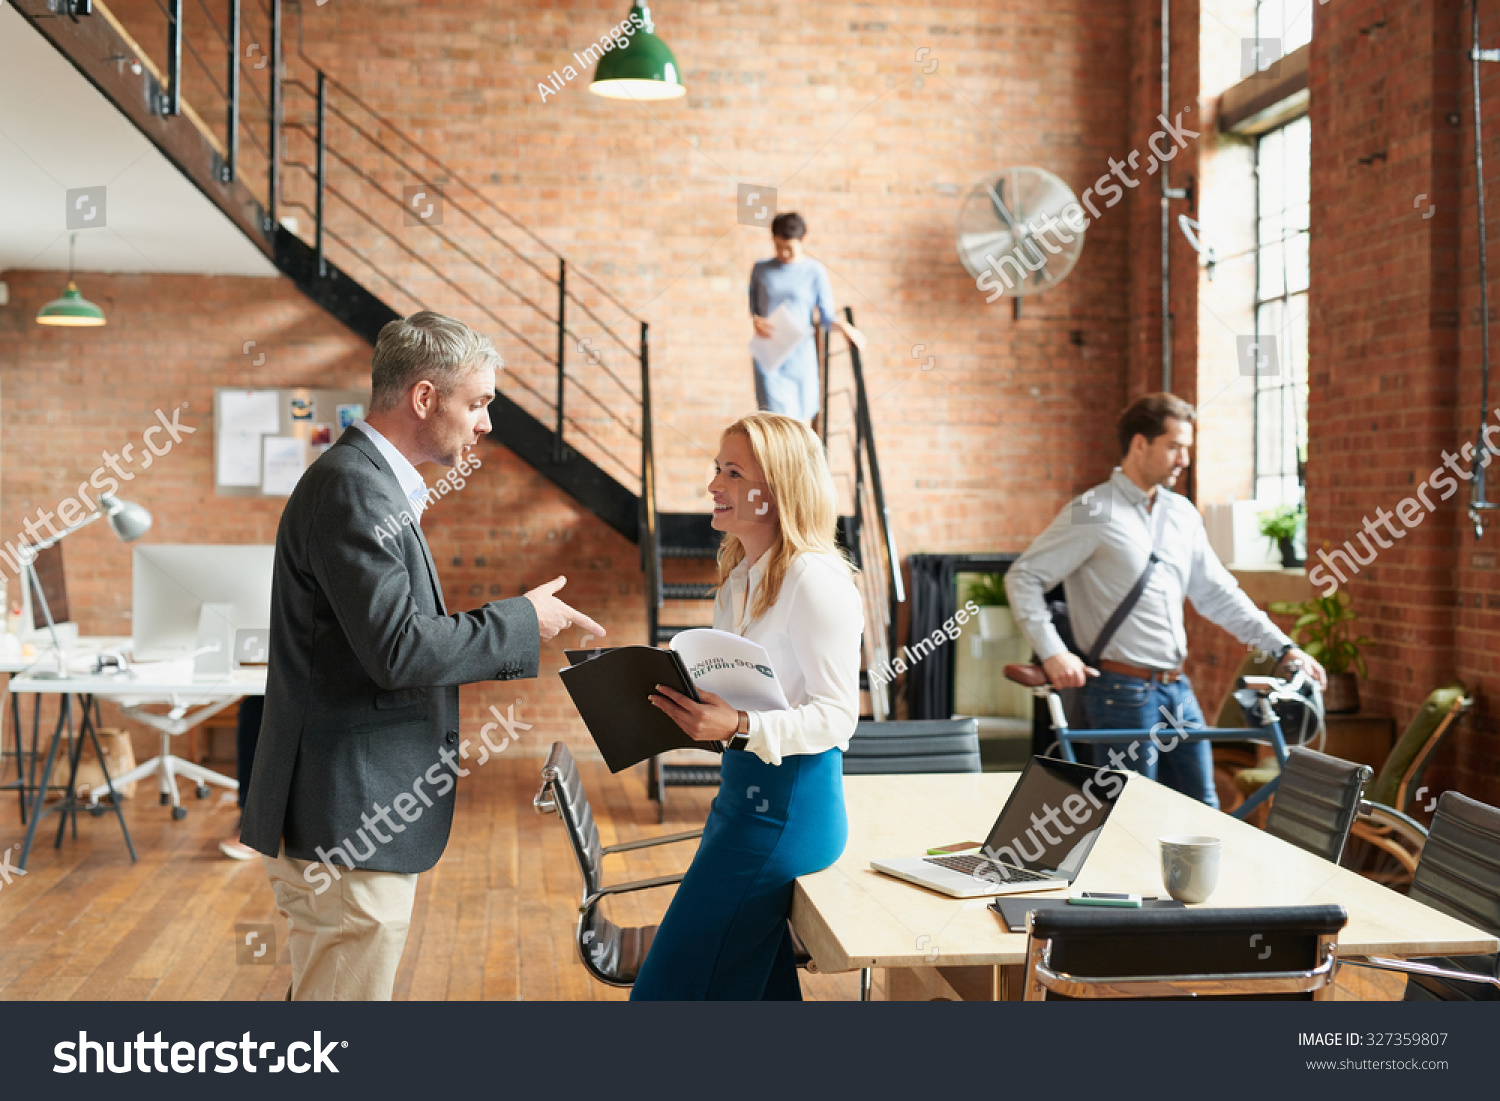 trendy office. Busy Trendy Office With Business People Achieving Success